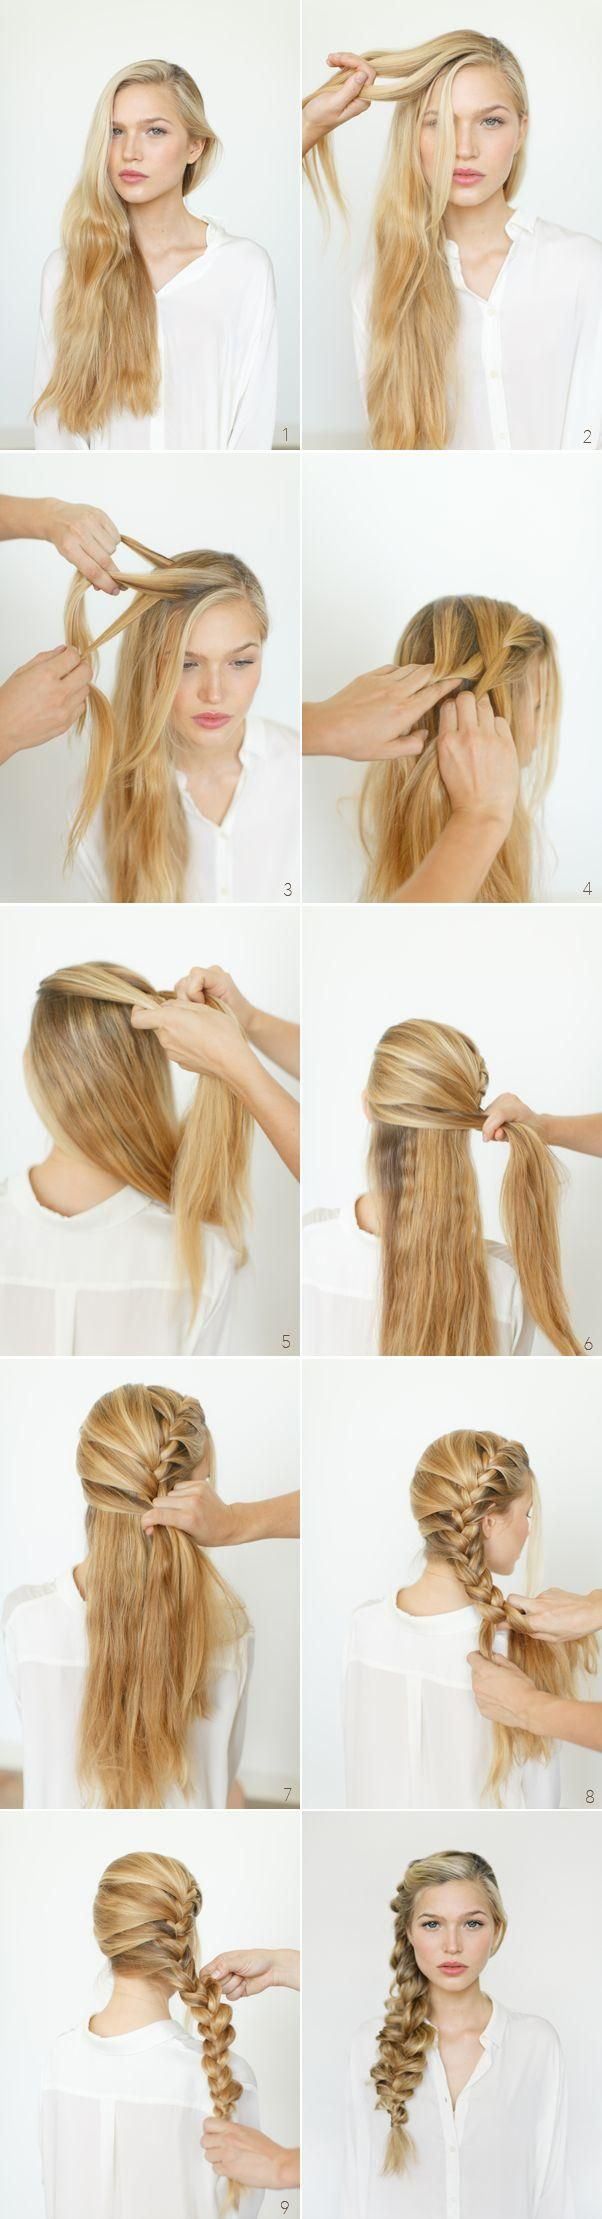 I would love wearing this hairstyle